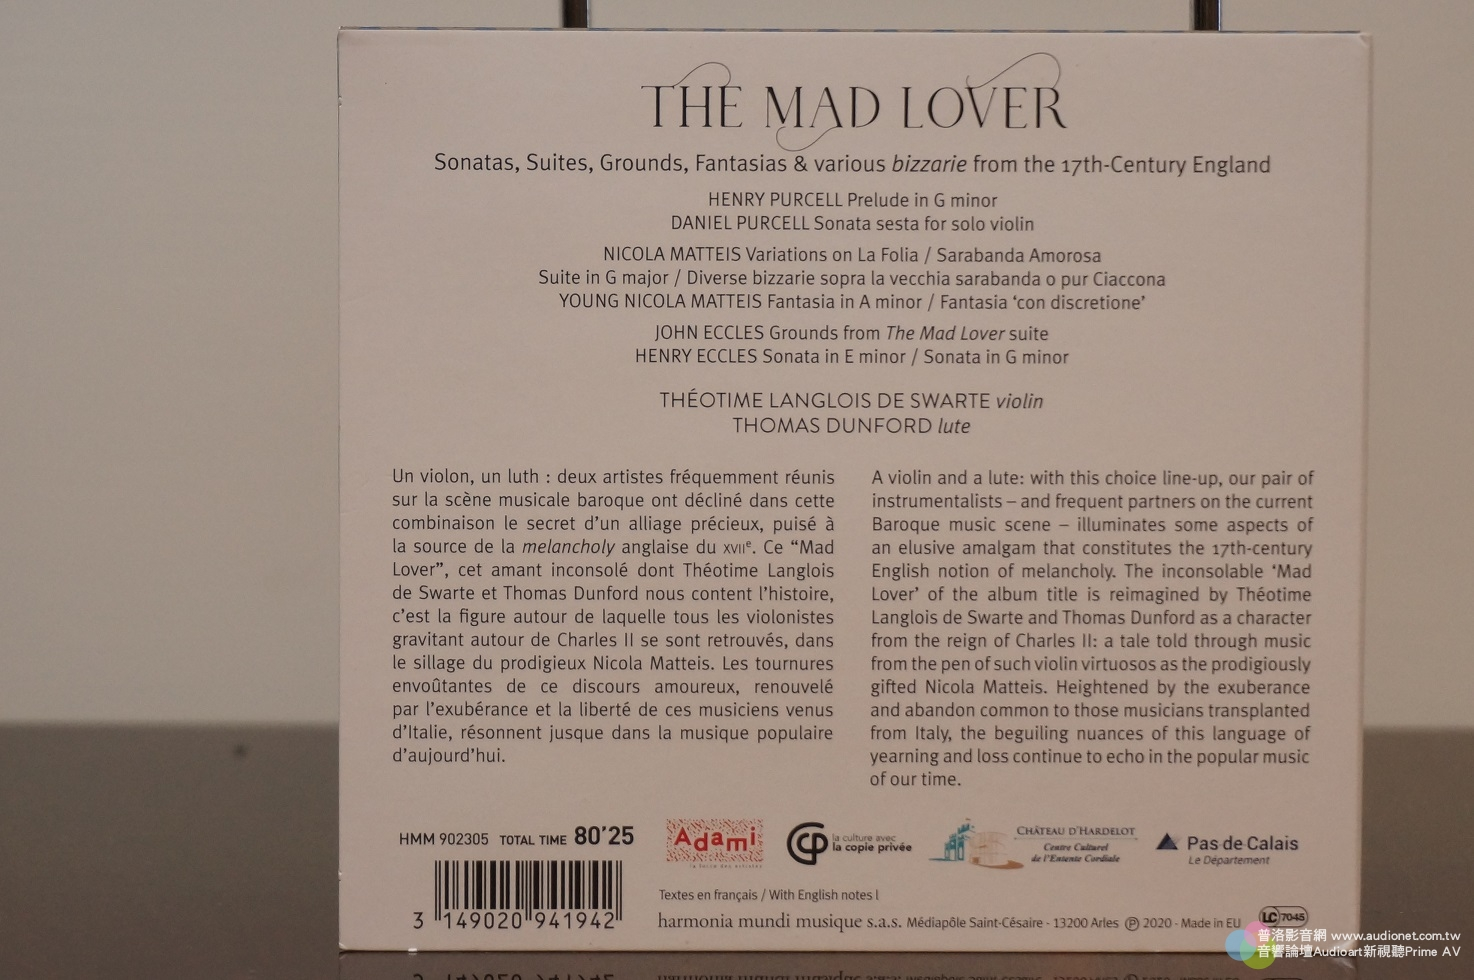 The Mad Lover, 17世紀甜得滴蜜的小提琴